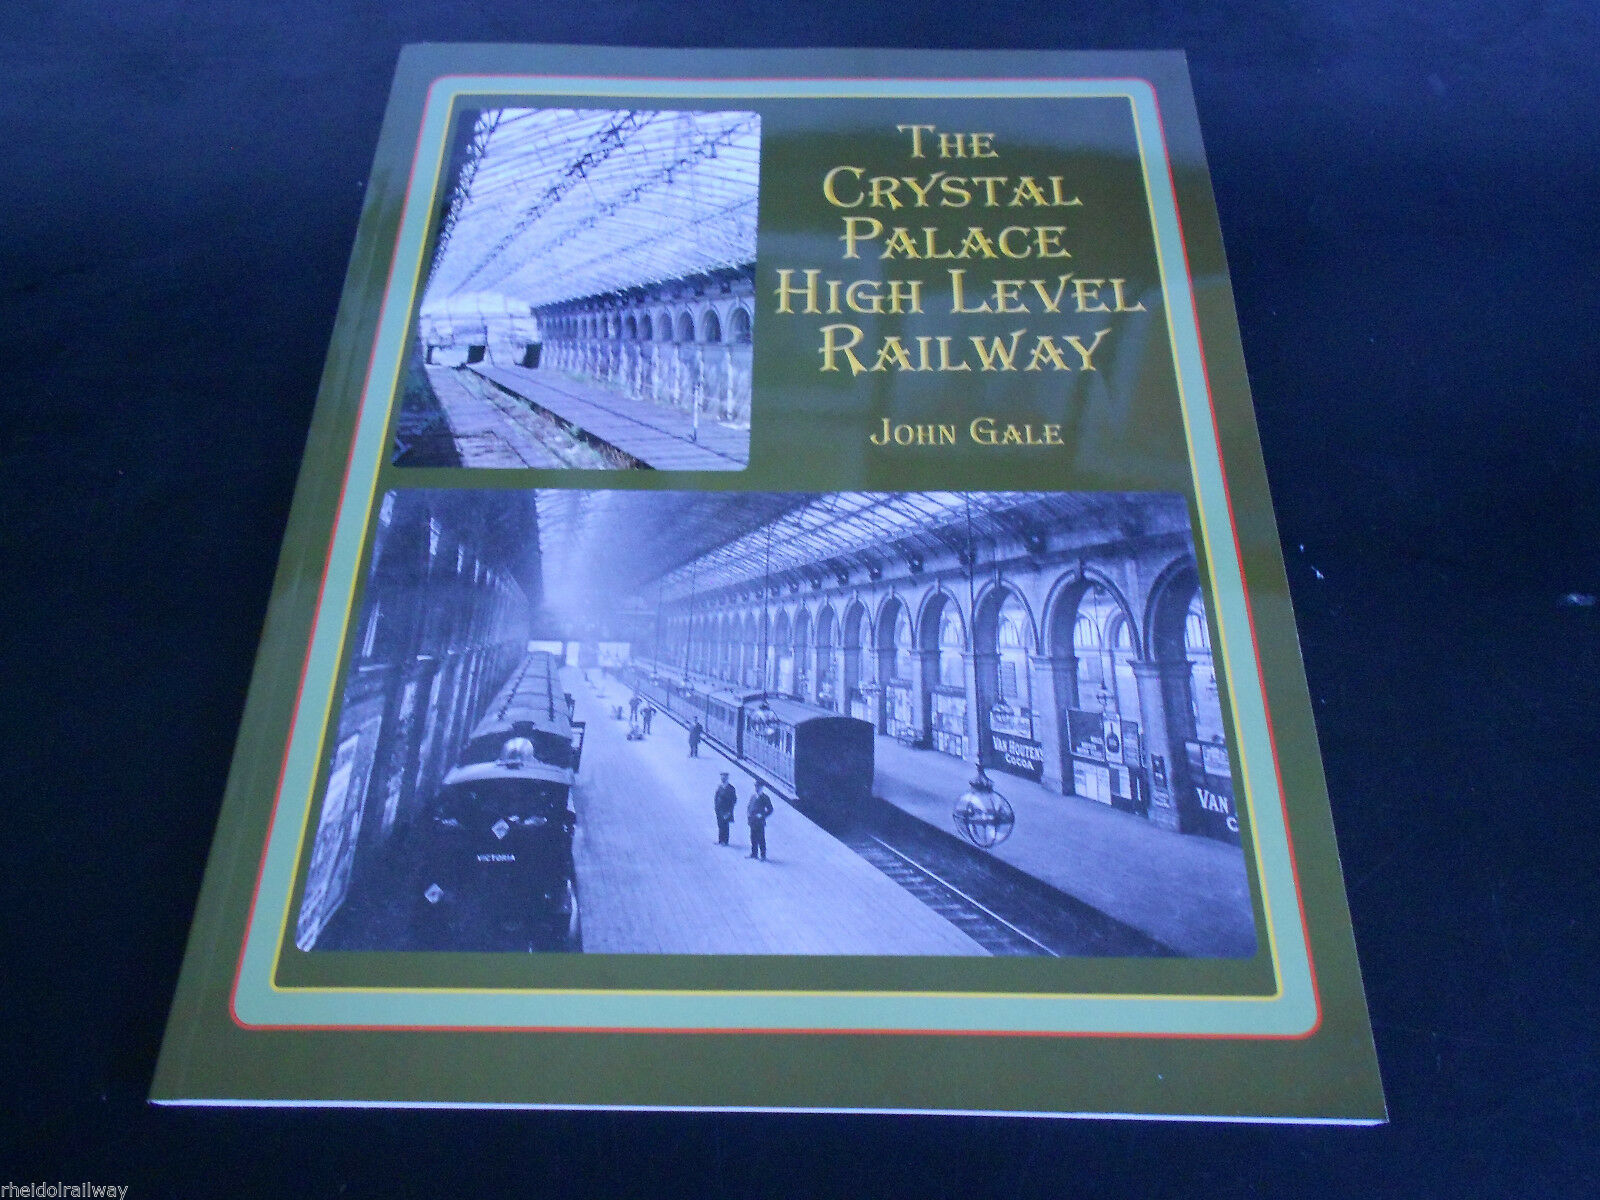 The Crystal Palace High Level Railway by John Gale (Paperback, 2011) - The Vale of Rheidol Railway